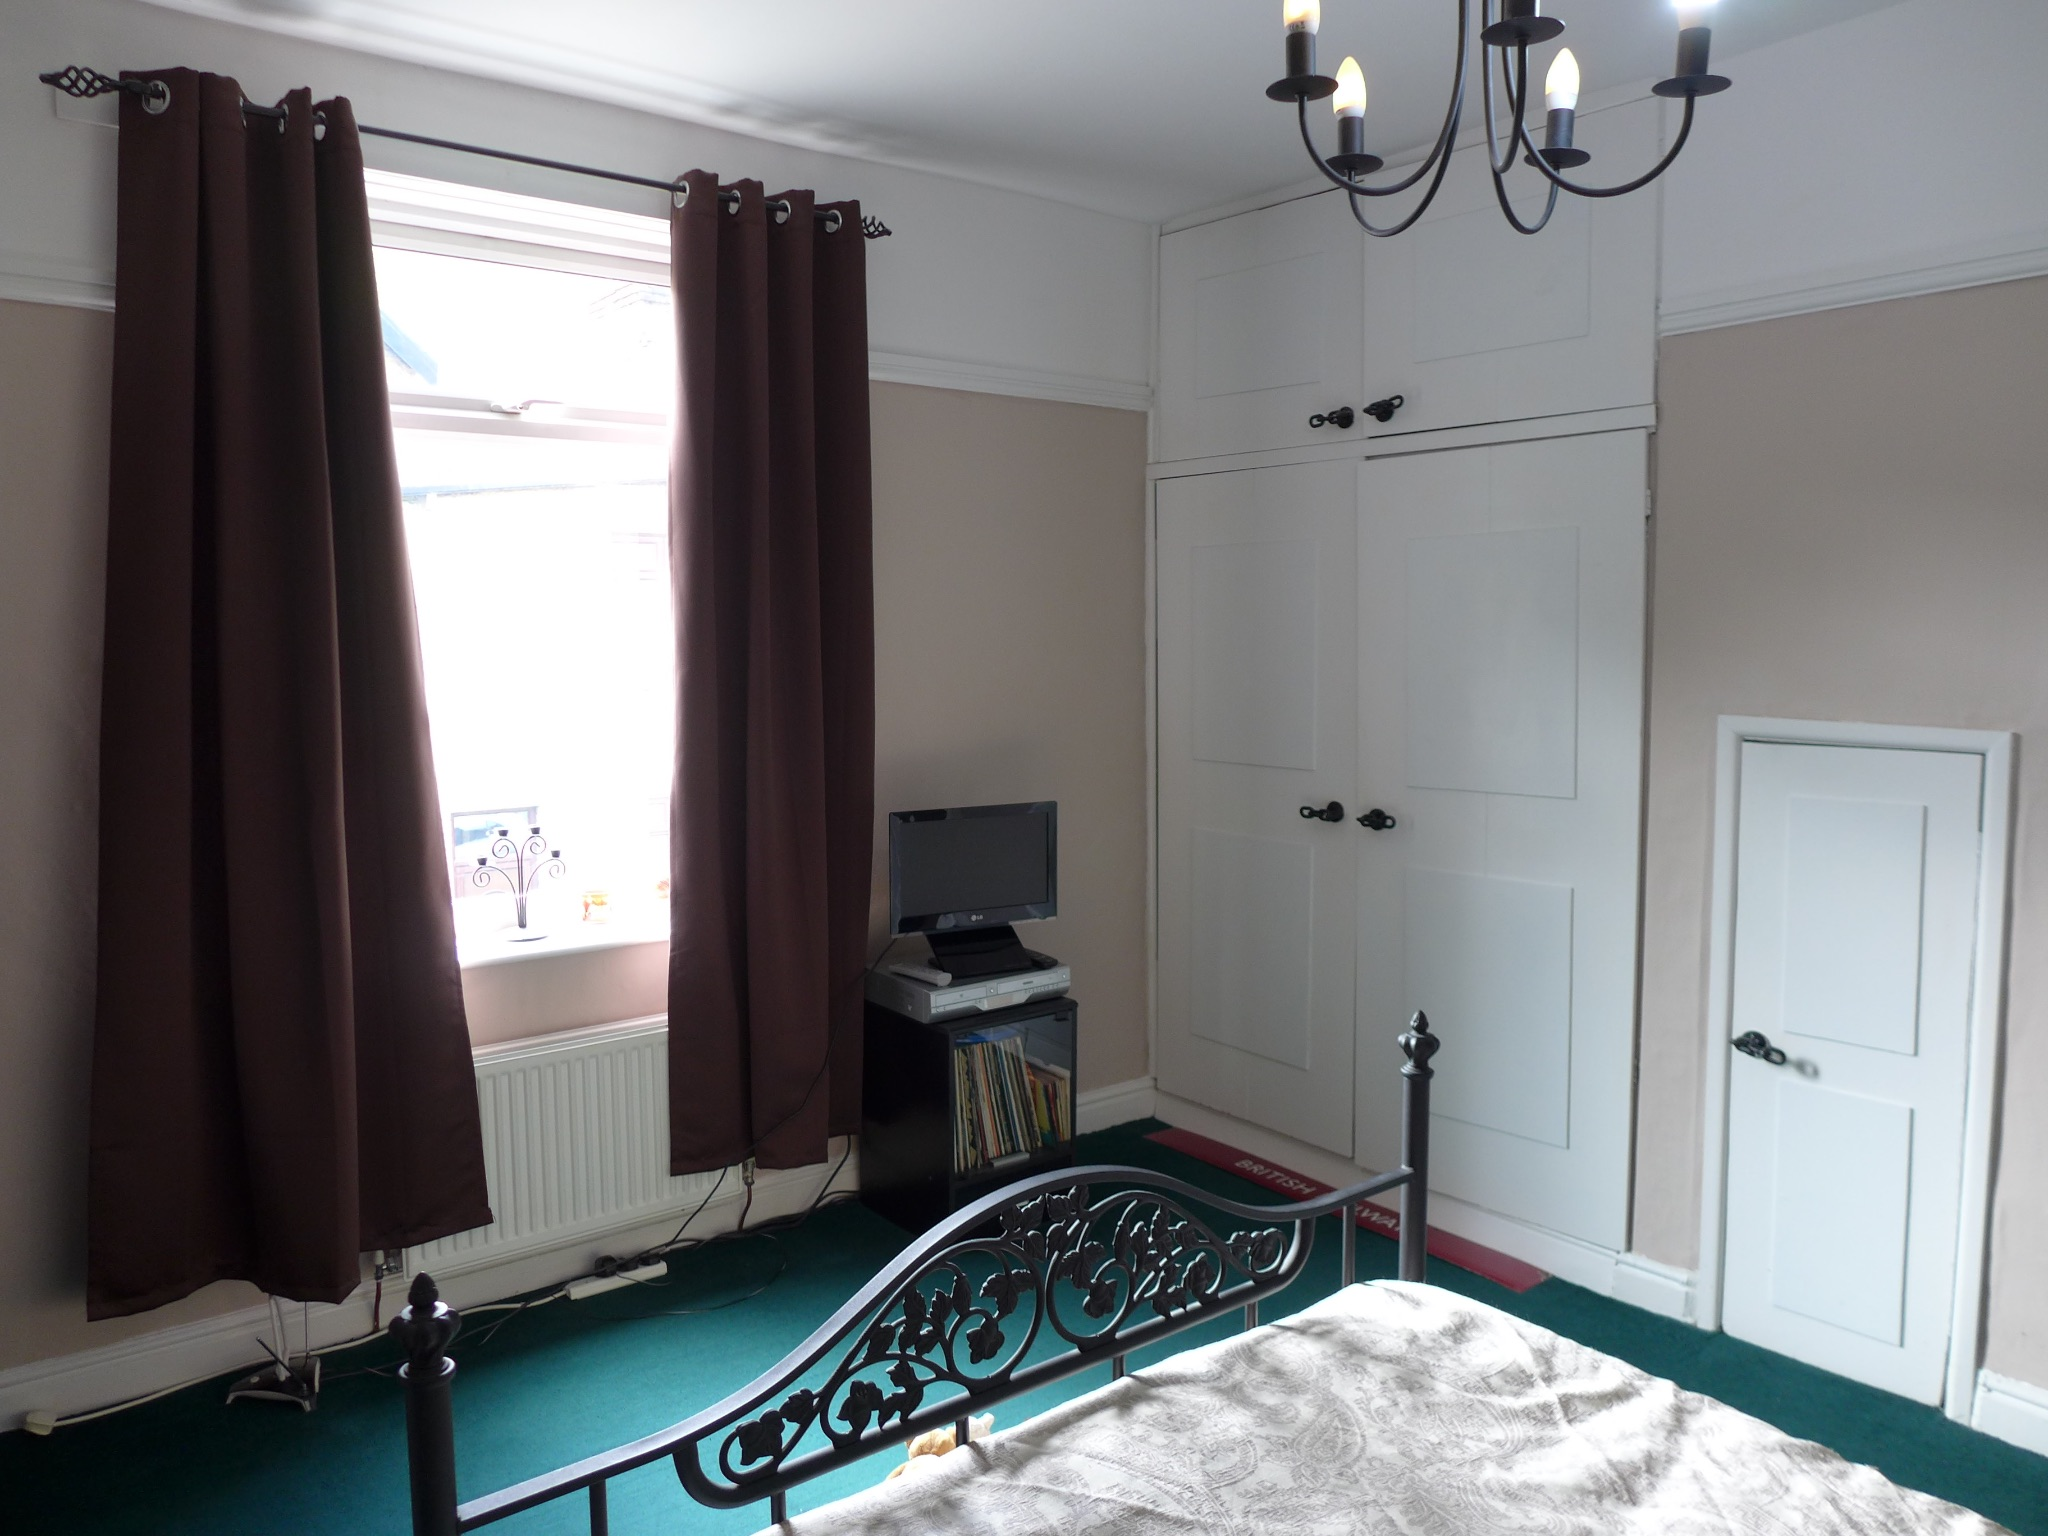 3 bedroom end terraced house For Sale in Todmorden - Photograph 11.